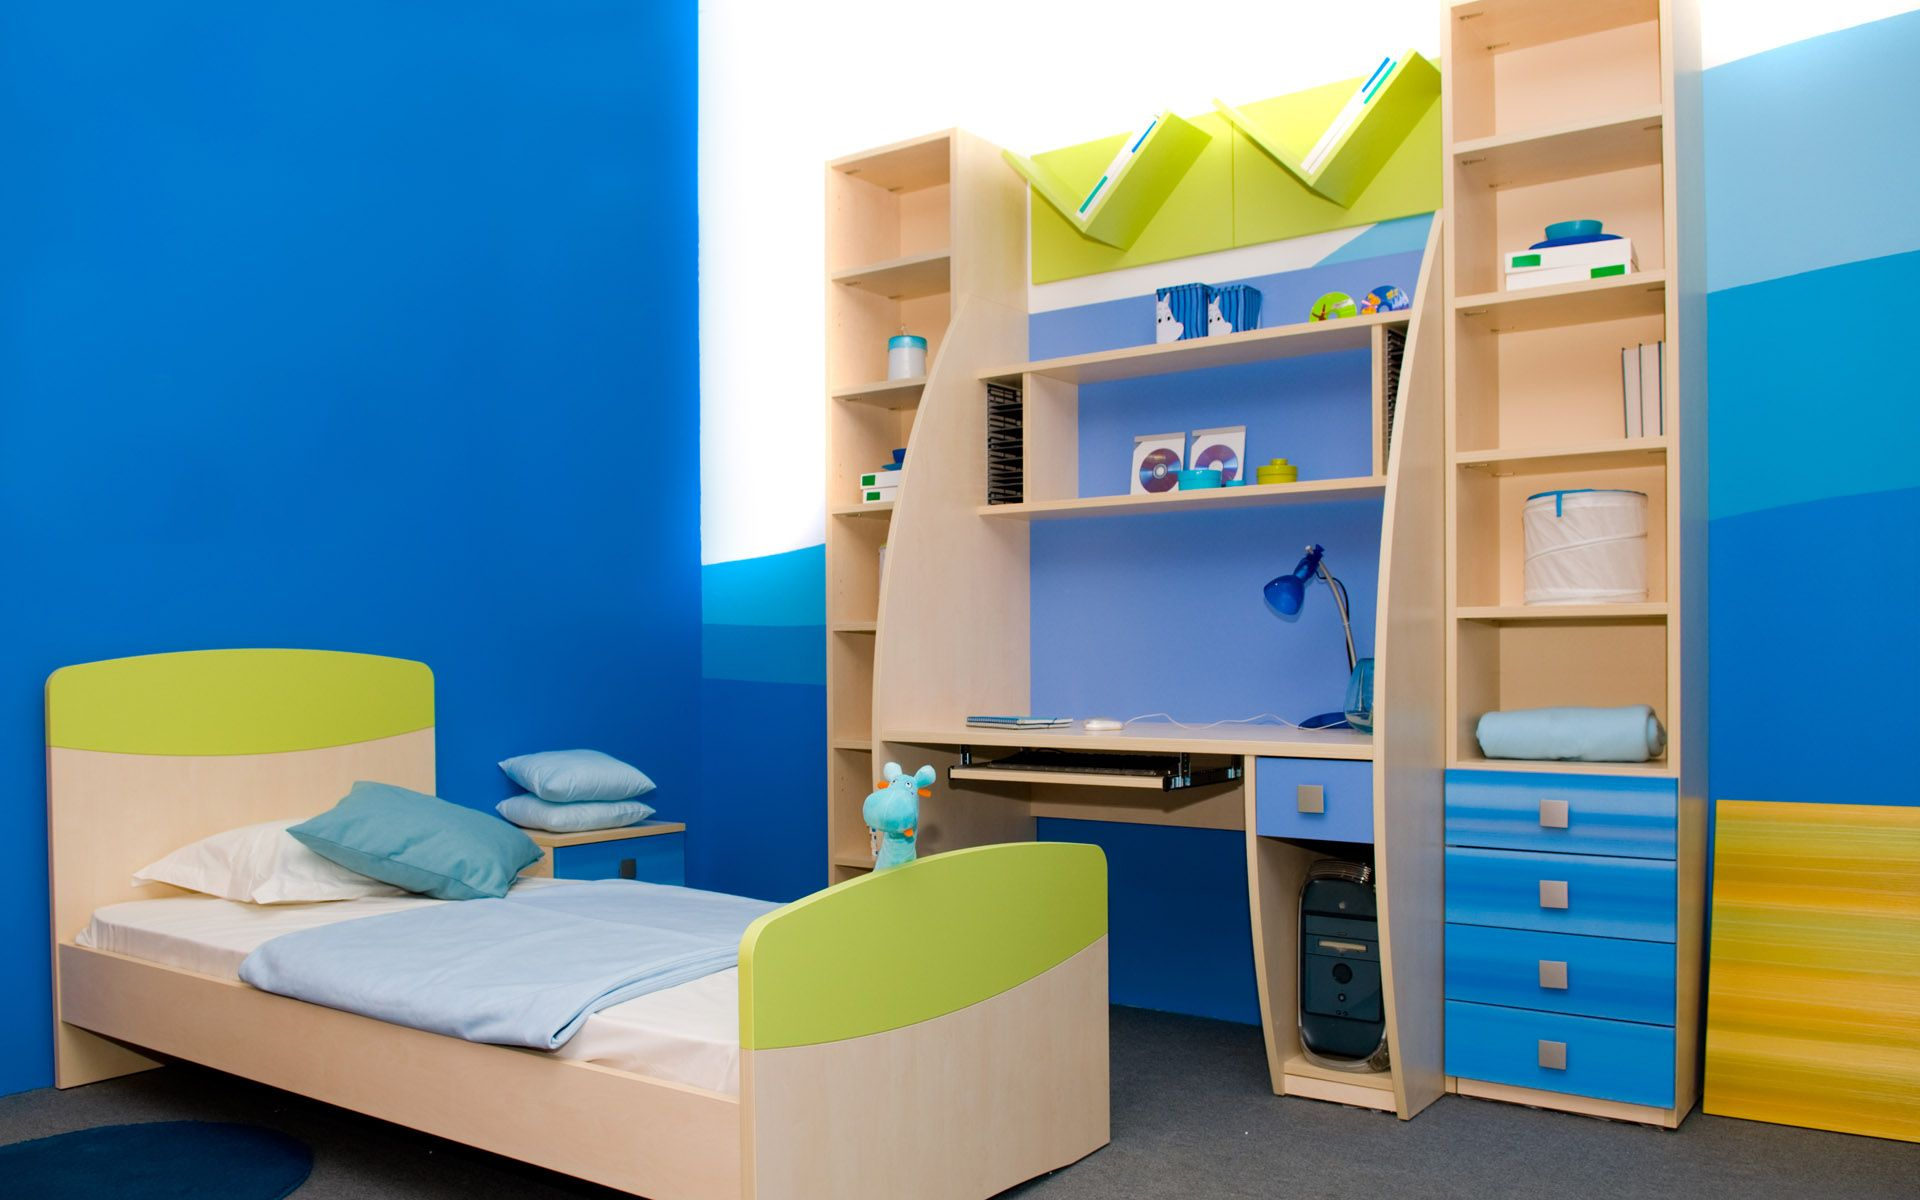 Attractive 28 Elegant Kids Room Ideas, Full Of Colors Part 5